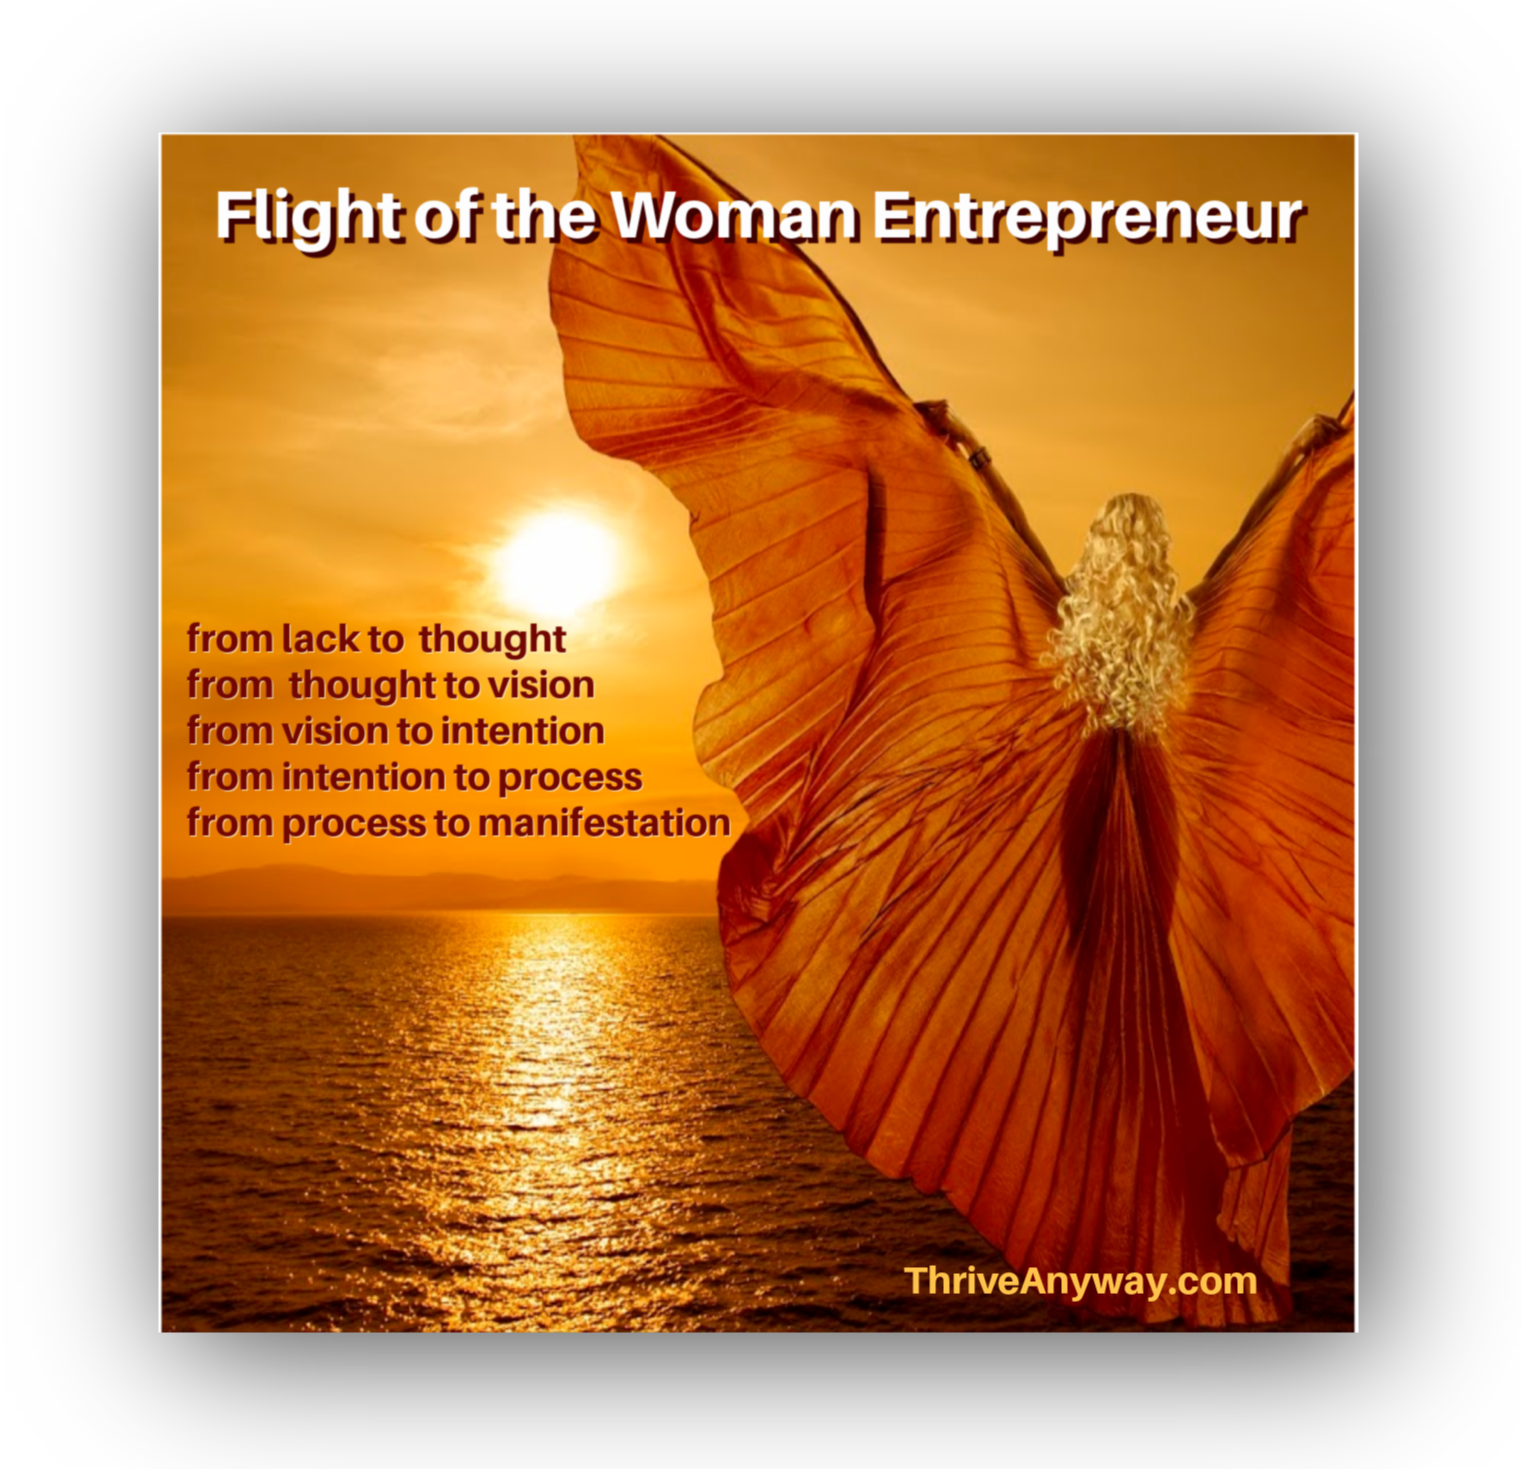 Flight of the woman entrepreneur